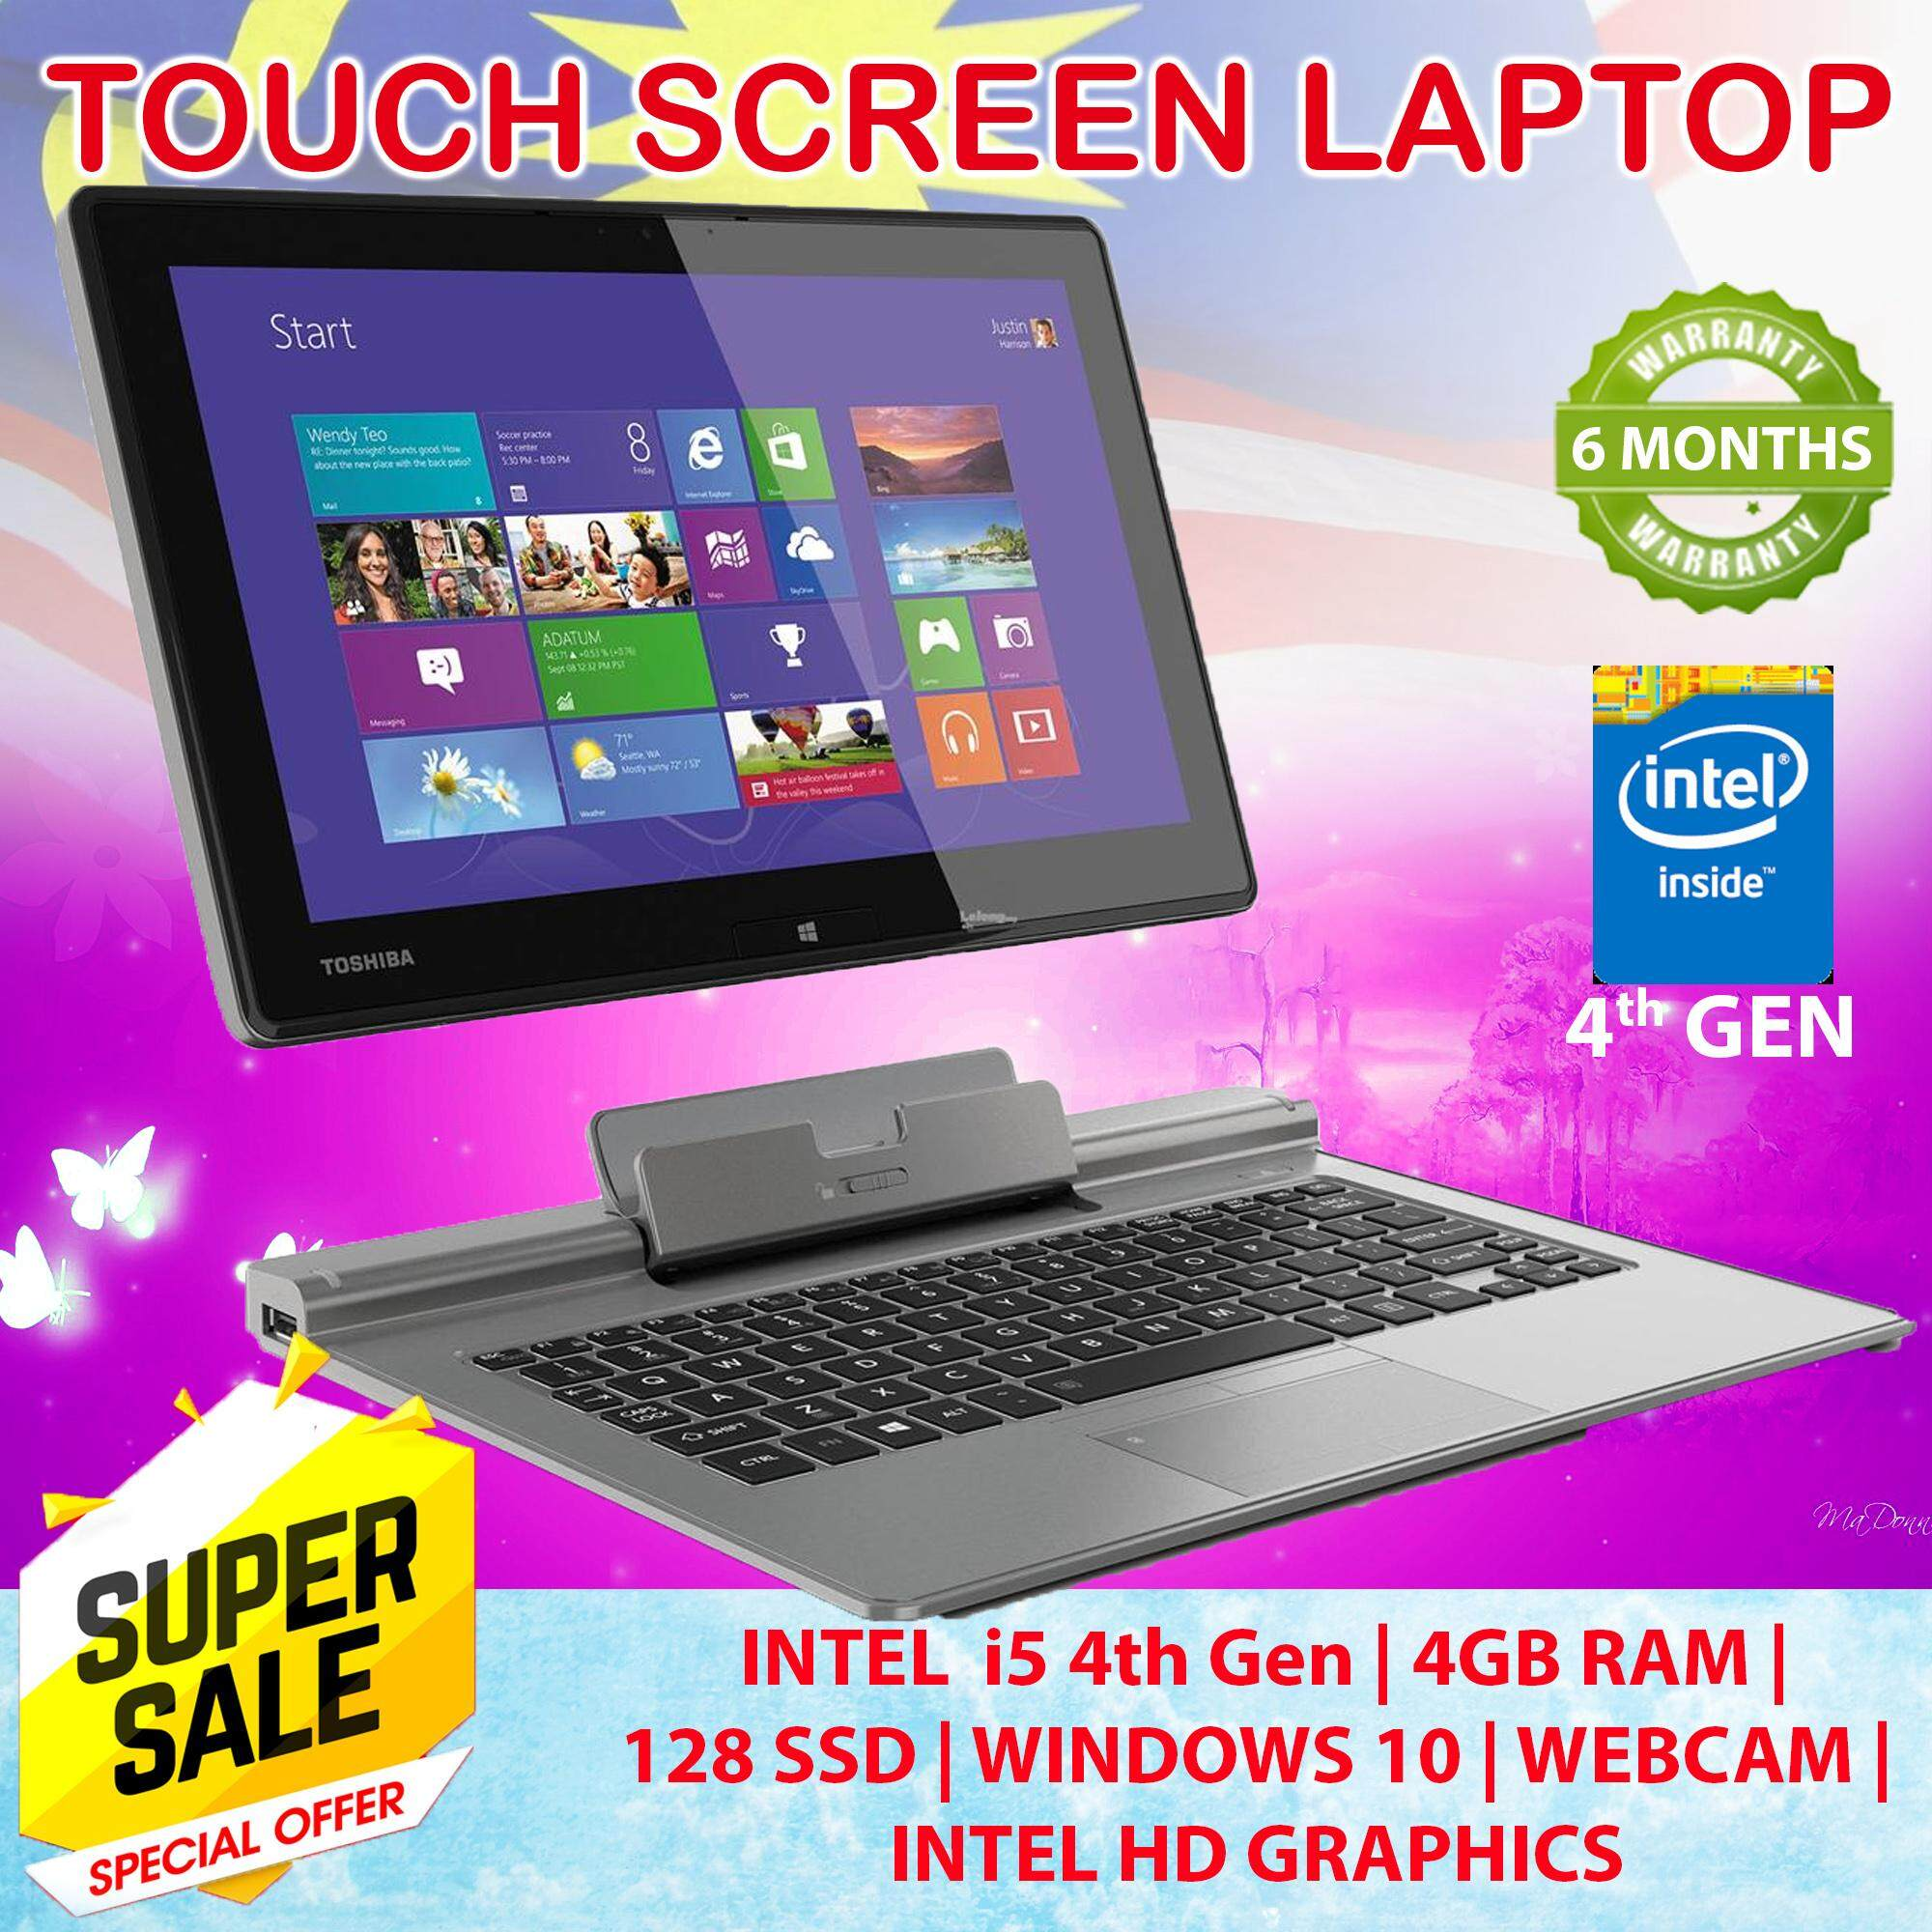 Toshiba Portege Z10t-A -(Touch Screen) Laptop - Intel Core i5-4th Gen ,4GB RAM,128GB 6 months warranty - Free Bag + other items Malaysia